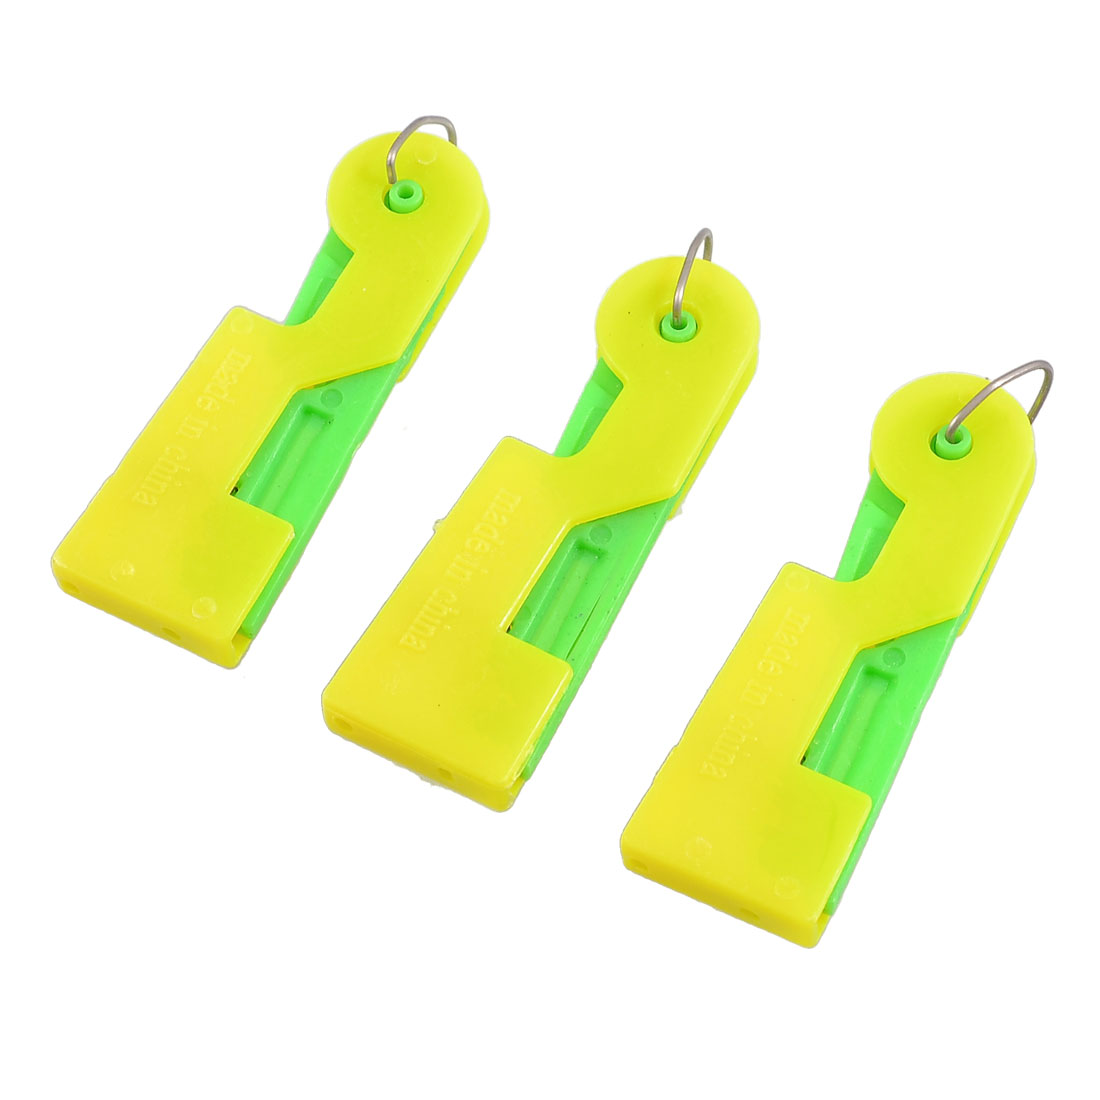 Unique Bargains Press Plastic Sewing Needle Threader Guide Green Yellow 3 Pcs